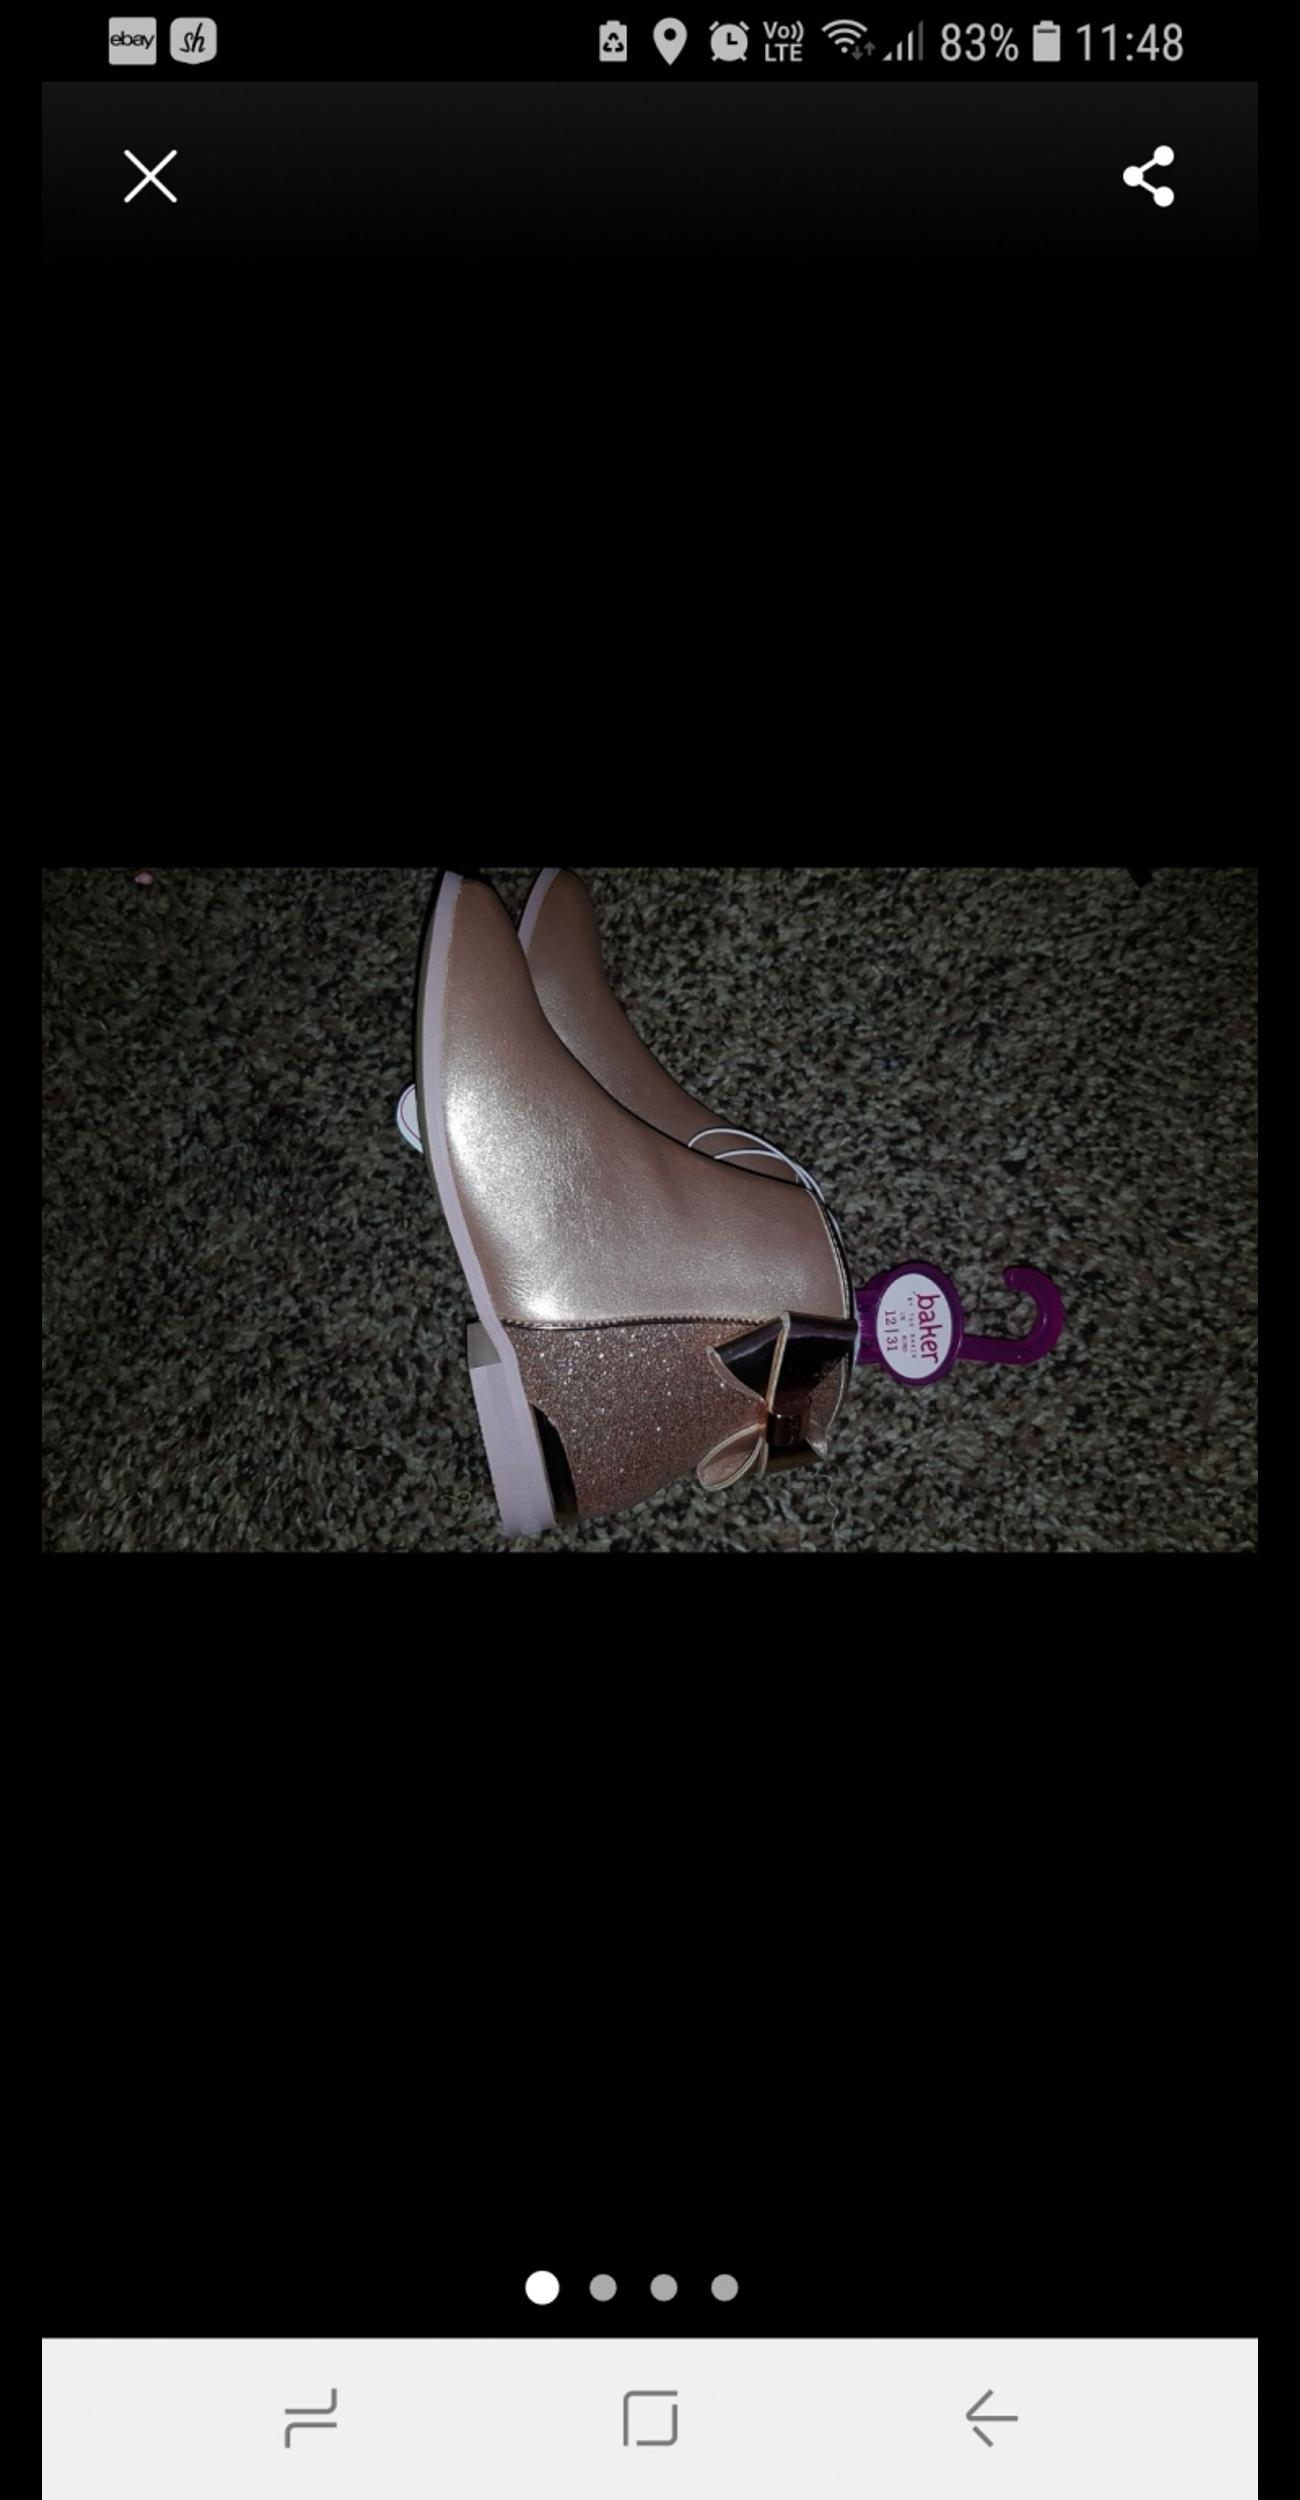 69b98f3ba Ted baker girls shoes size 12 in LS17 Leeds for £18.00 for sale - Shpock